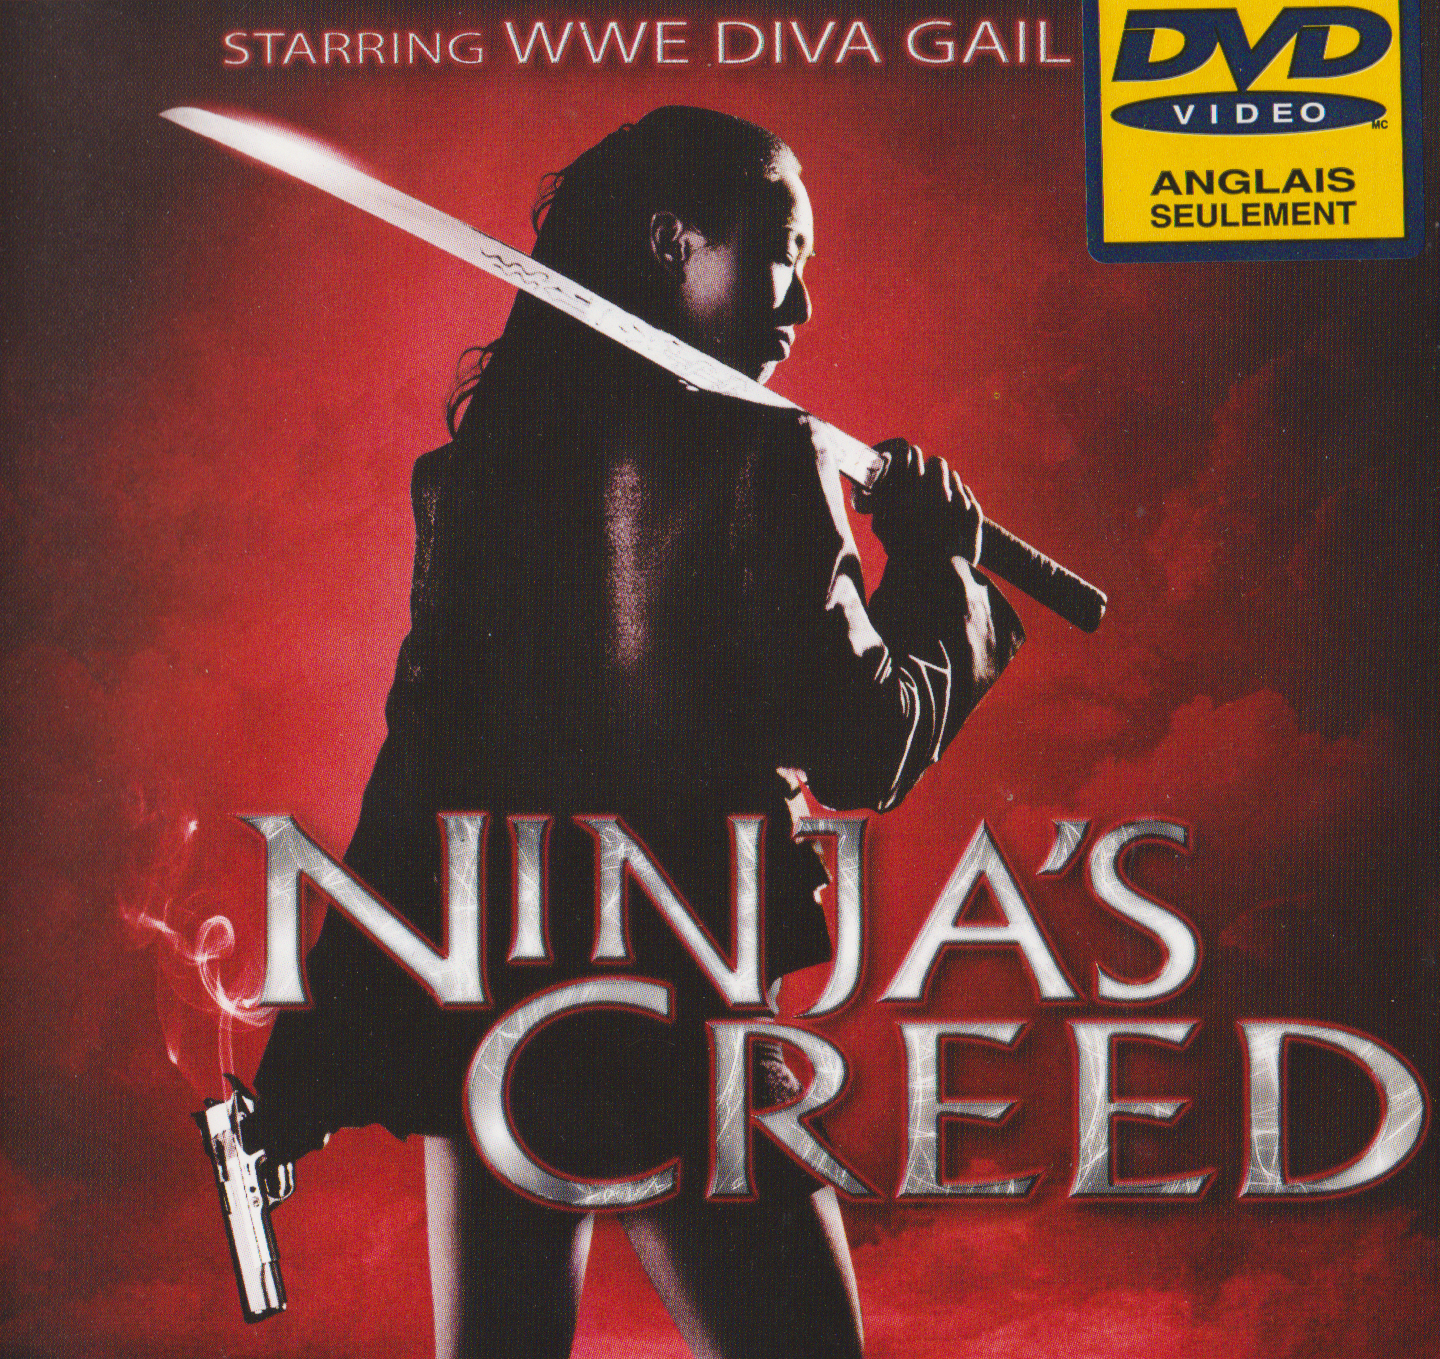 Ninjas Creed featured